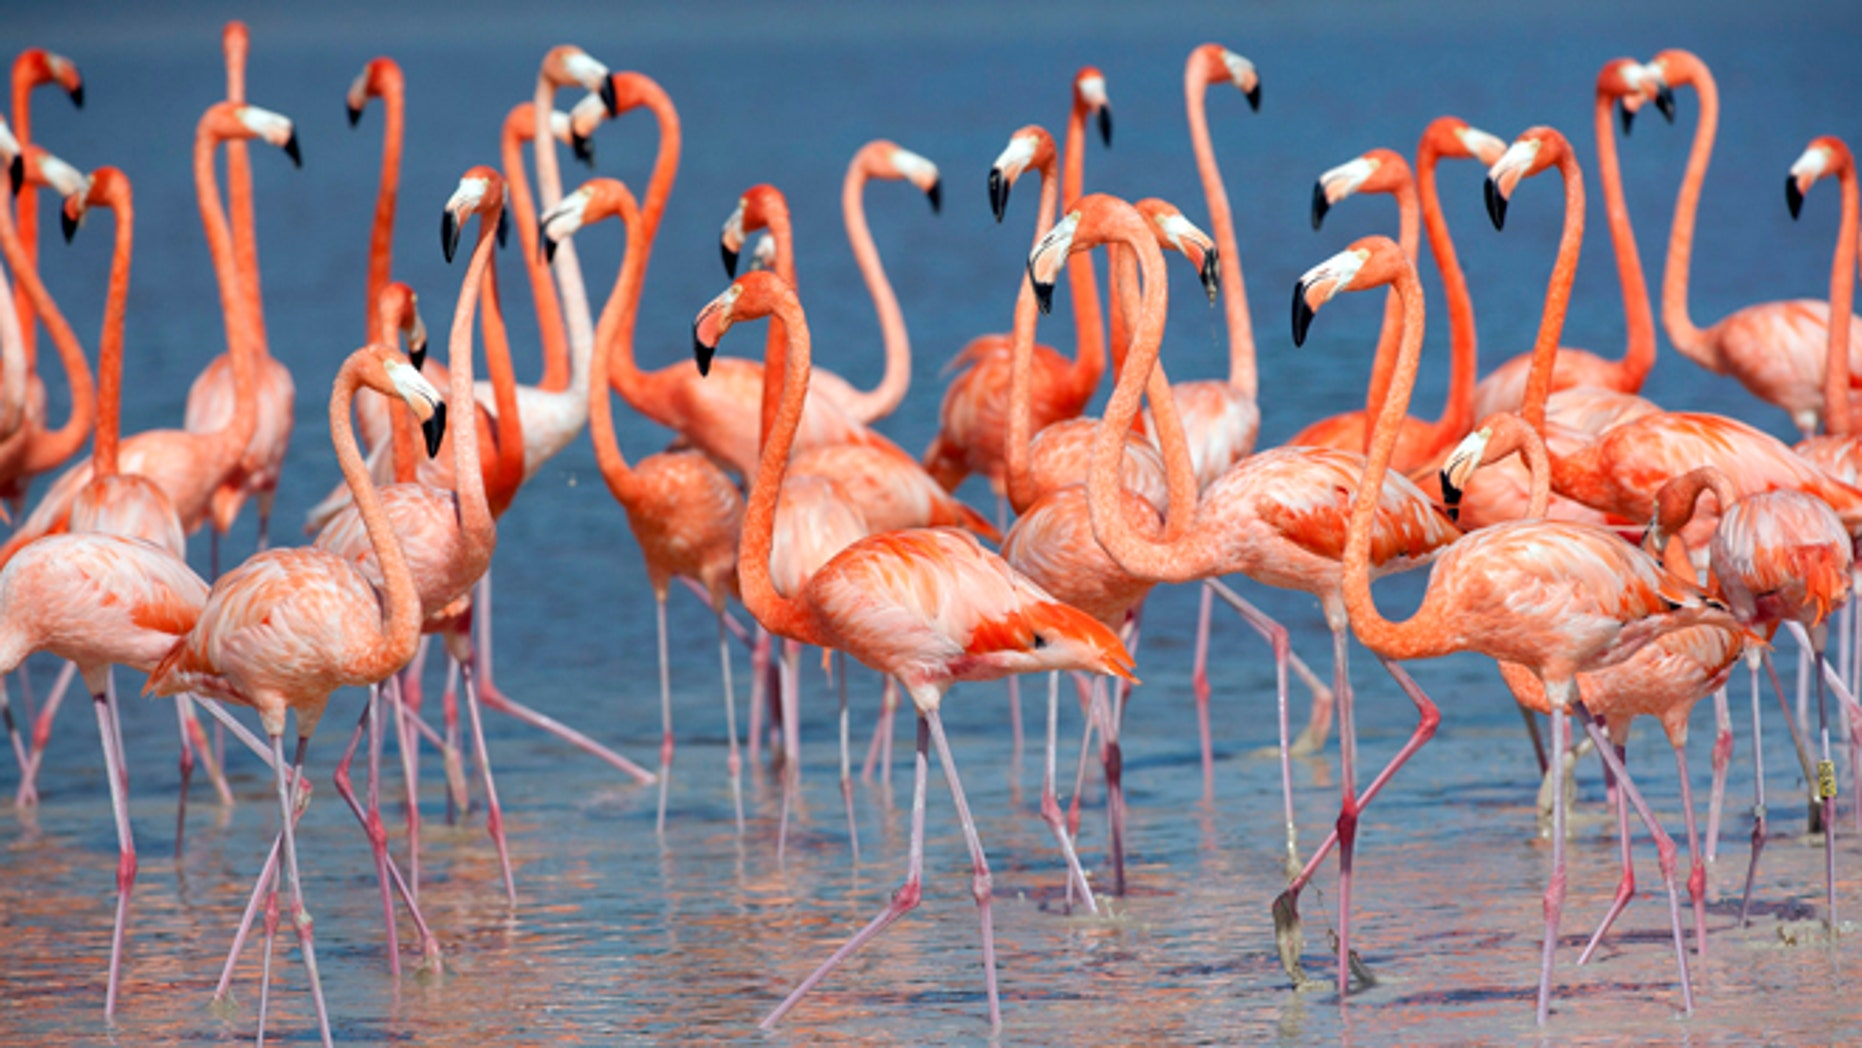 Flamingos stand in the waters of a wetland reserve in Celestun in Mexico's Yucatan Peninsula December 6, 2011. With the world's population of wild flamingos under threat from overdevelopment and illegal trade on the black market, the wetland reserve is thriving with thousands of the pink feathered creatures in search of an ideal winter habitat. According to the Caribbean Flamingo Conservation Program, the estimated 45,000 flamingos that call Mexico's Yucatan state home are an integral part of the travelling bird's regional metapopulation that stretches as far as the Caribbean islands. Picture taken December 6, 2011     REUTERS/Victor Ruiz Garcia (MEXICO - Tags: ENVIRONMENT ANIMALS TPX IMAGES OF THE DAY) - RTR2V26W